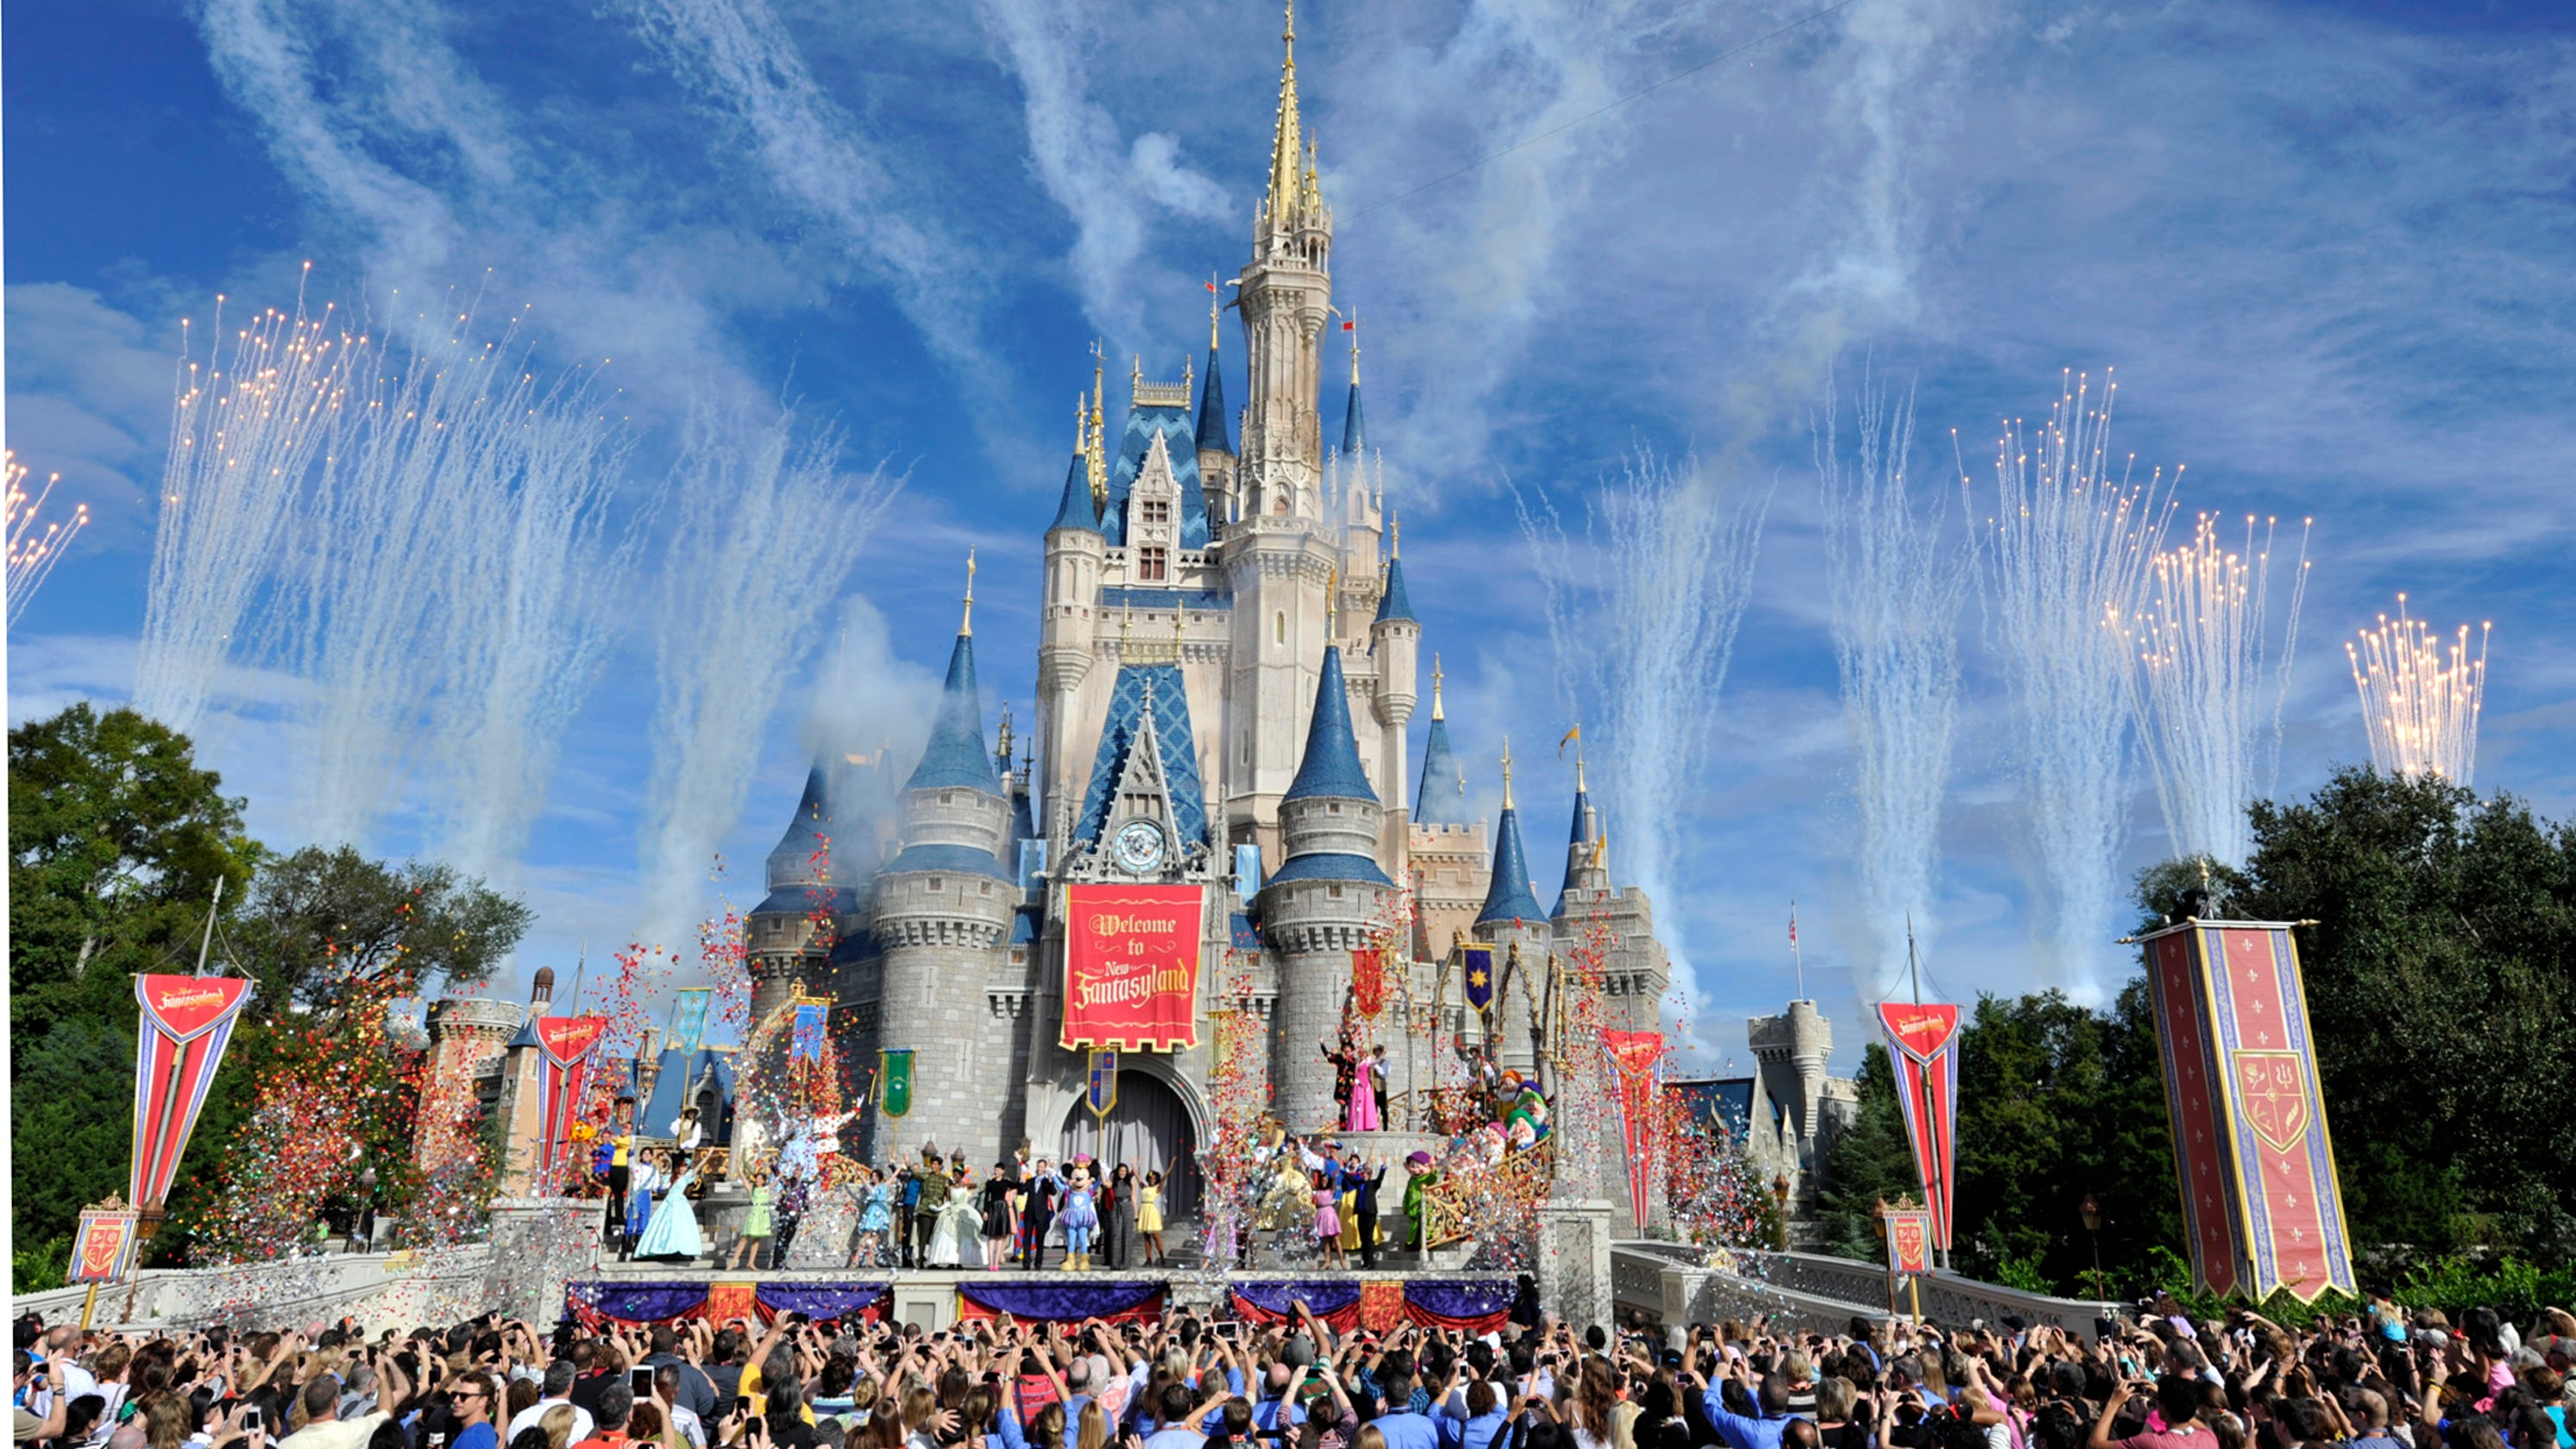 Disney World annual pass prices go up